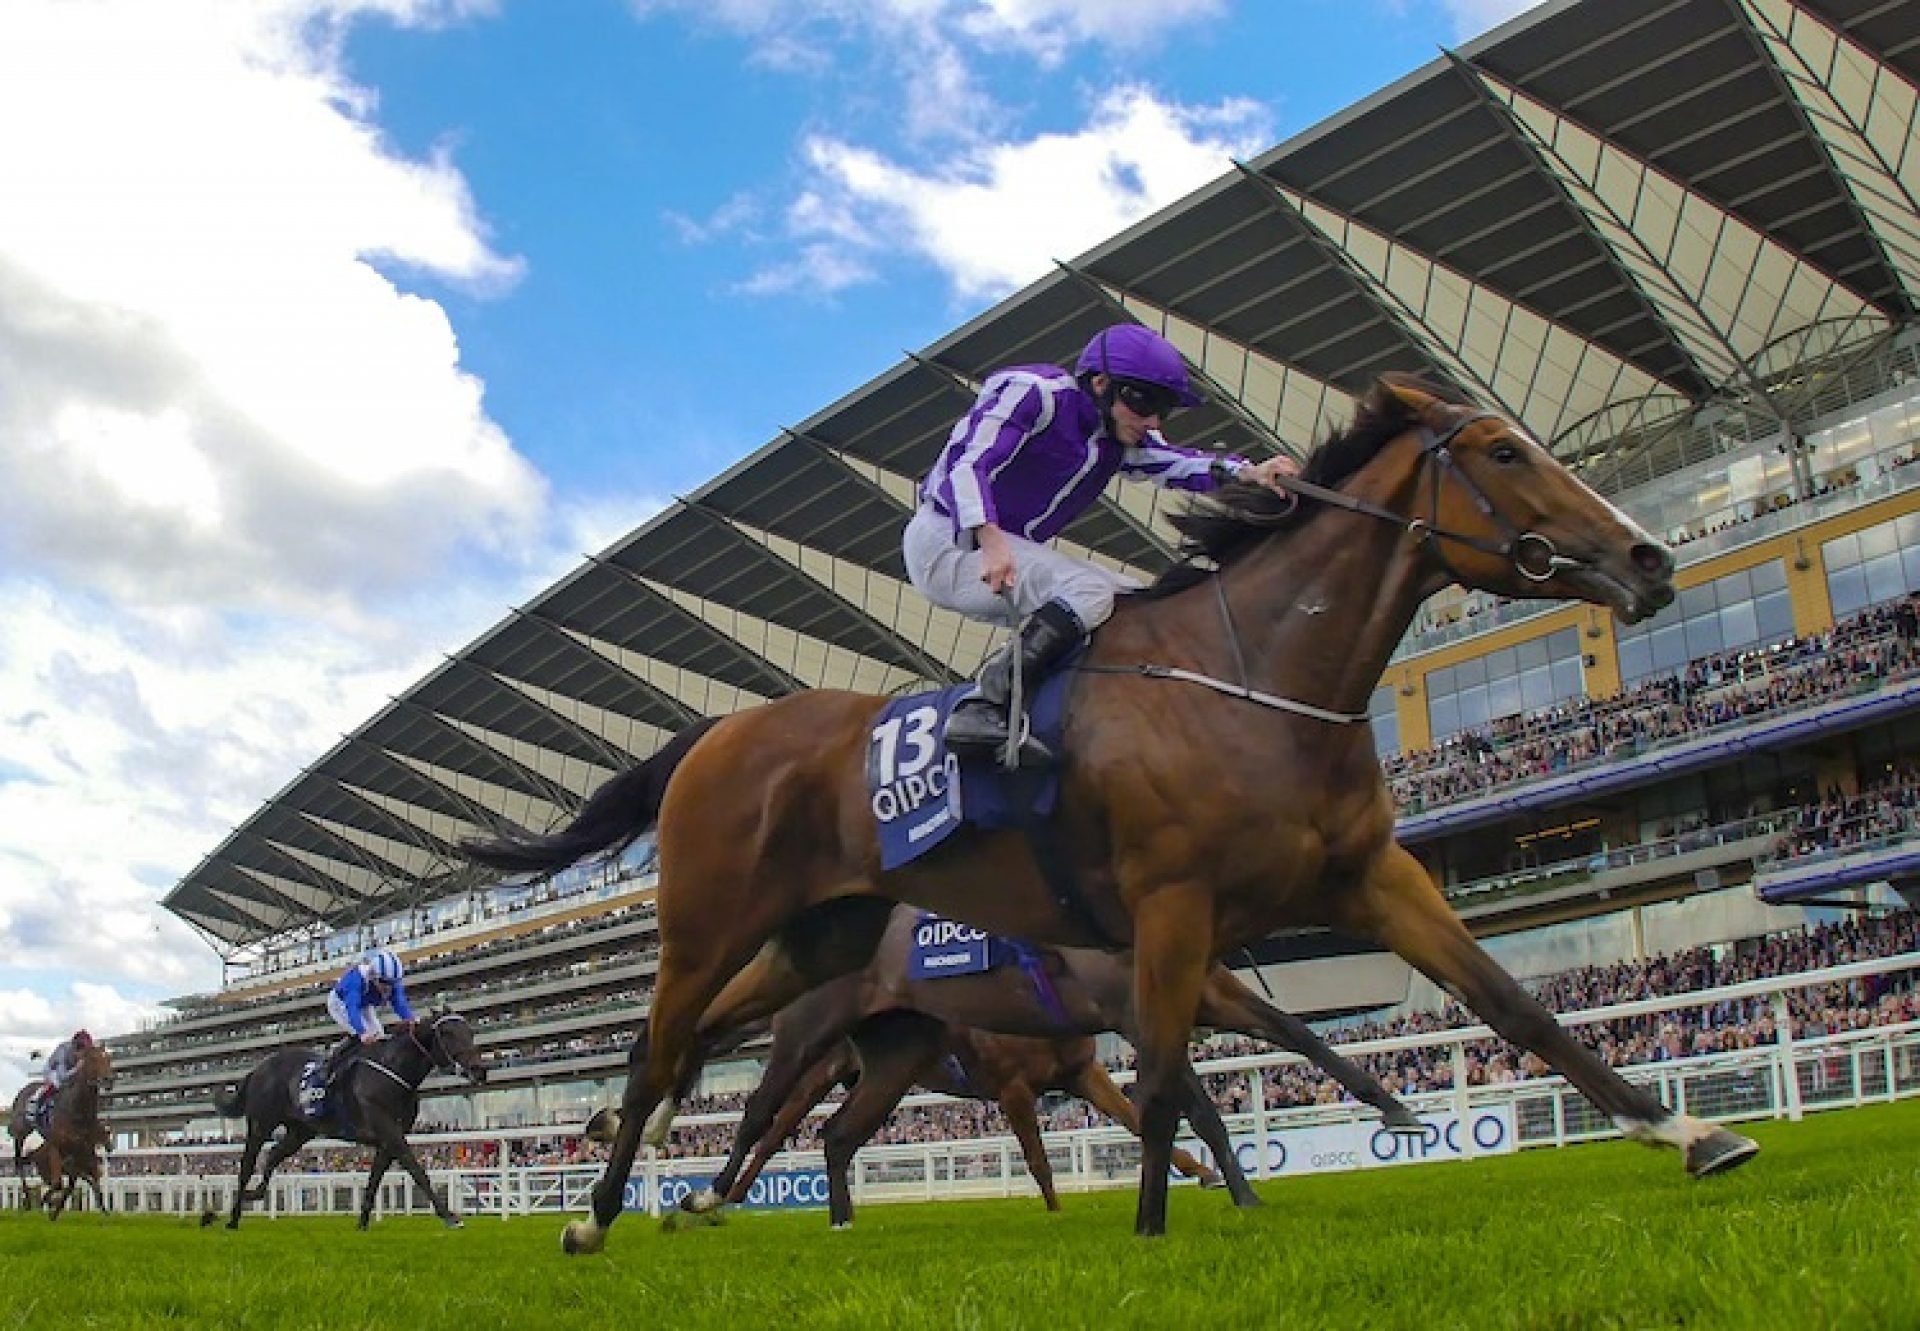 Minding (Galileo) winning the G1 Queen Elizabeth II Stakes at Ascot